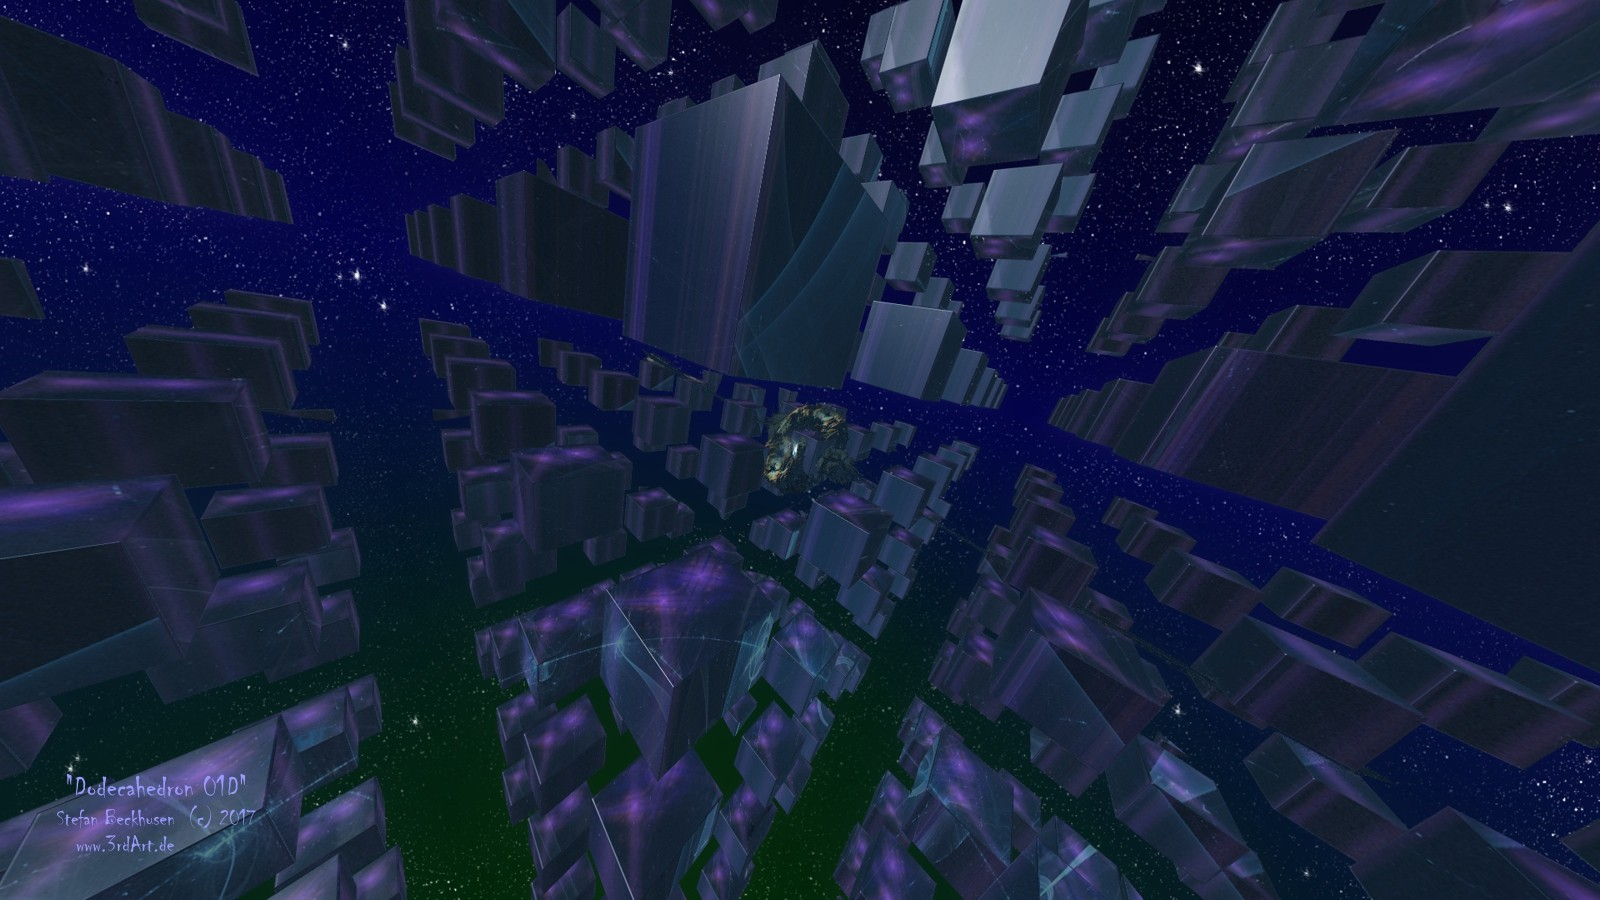 ArtStation - DODECAHEDRON 01D, the mystery planet and the